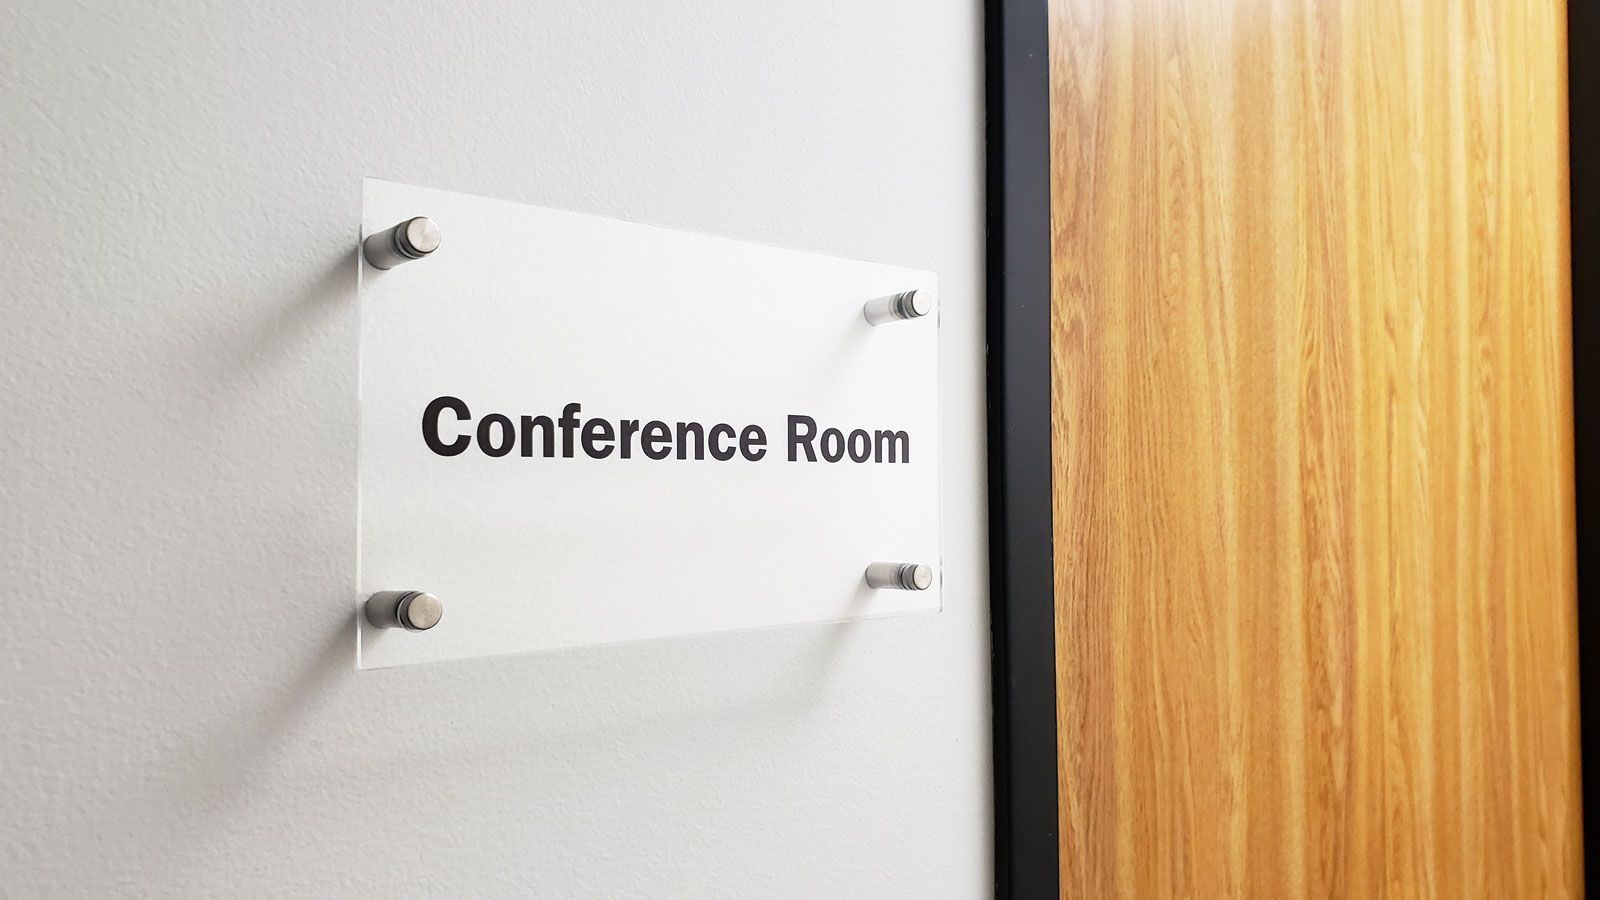 conference room acrylic sign